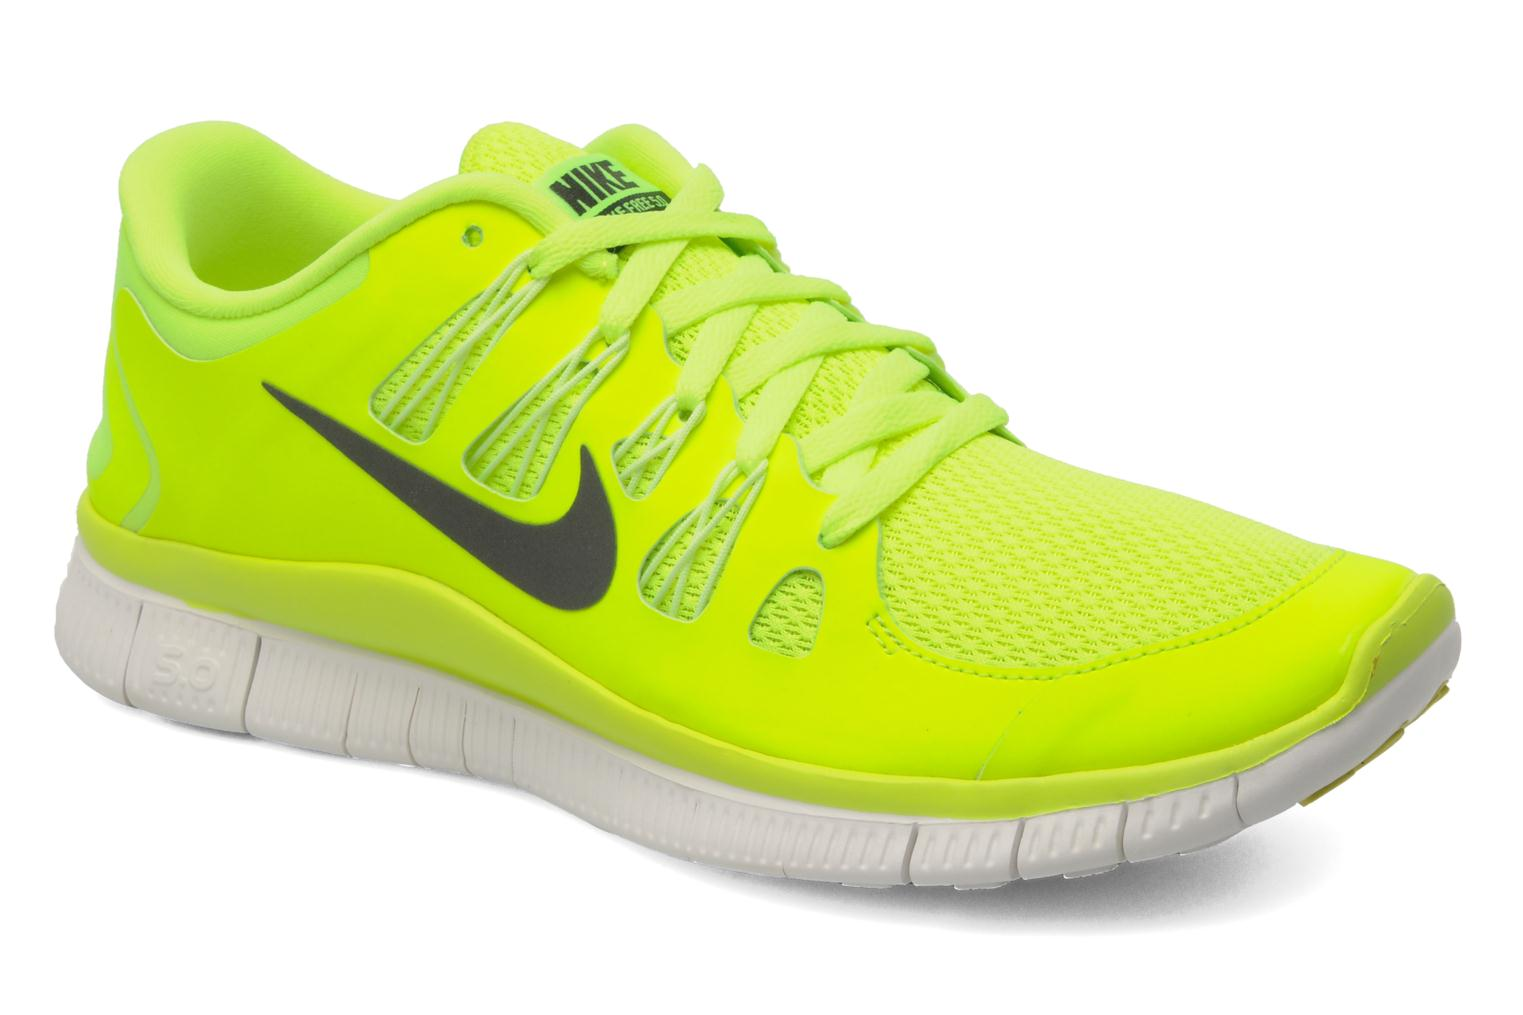 Nike Free Run 5.0 Giallo Fluo